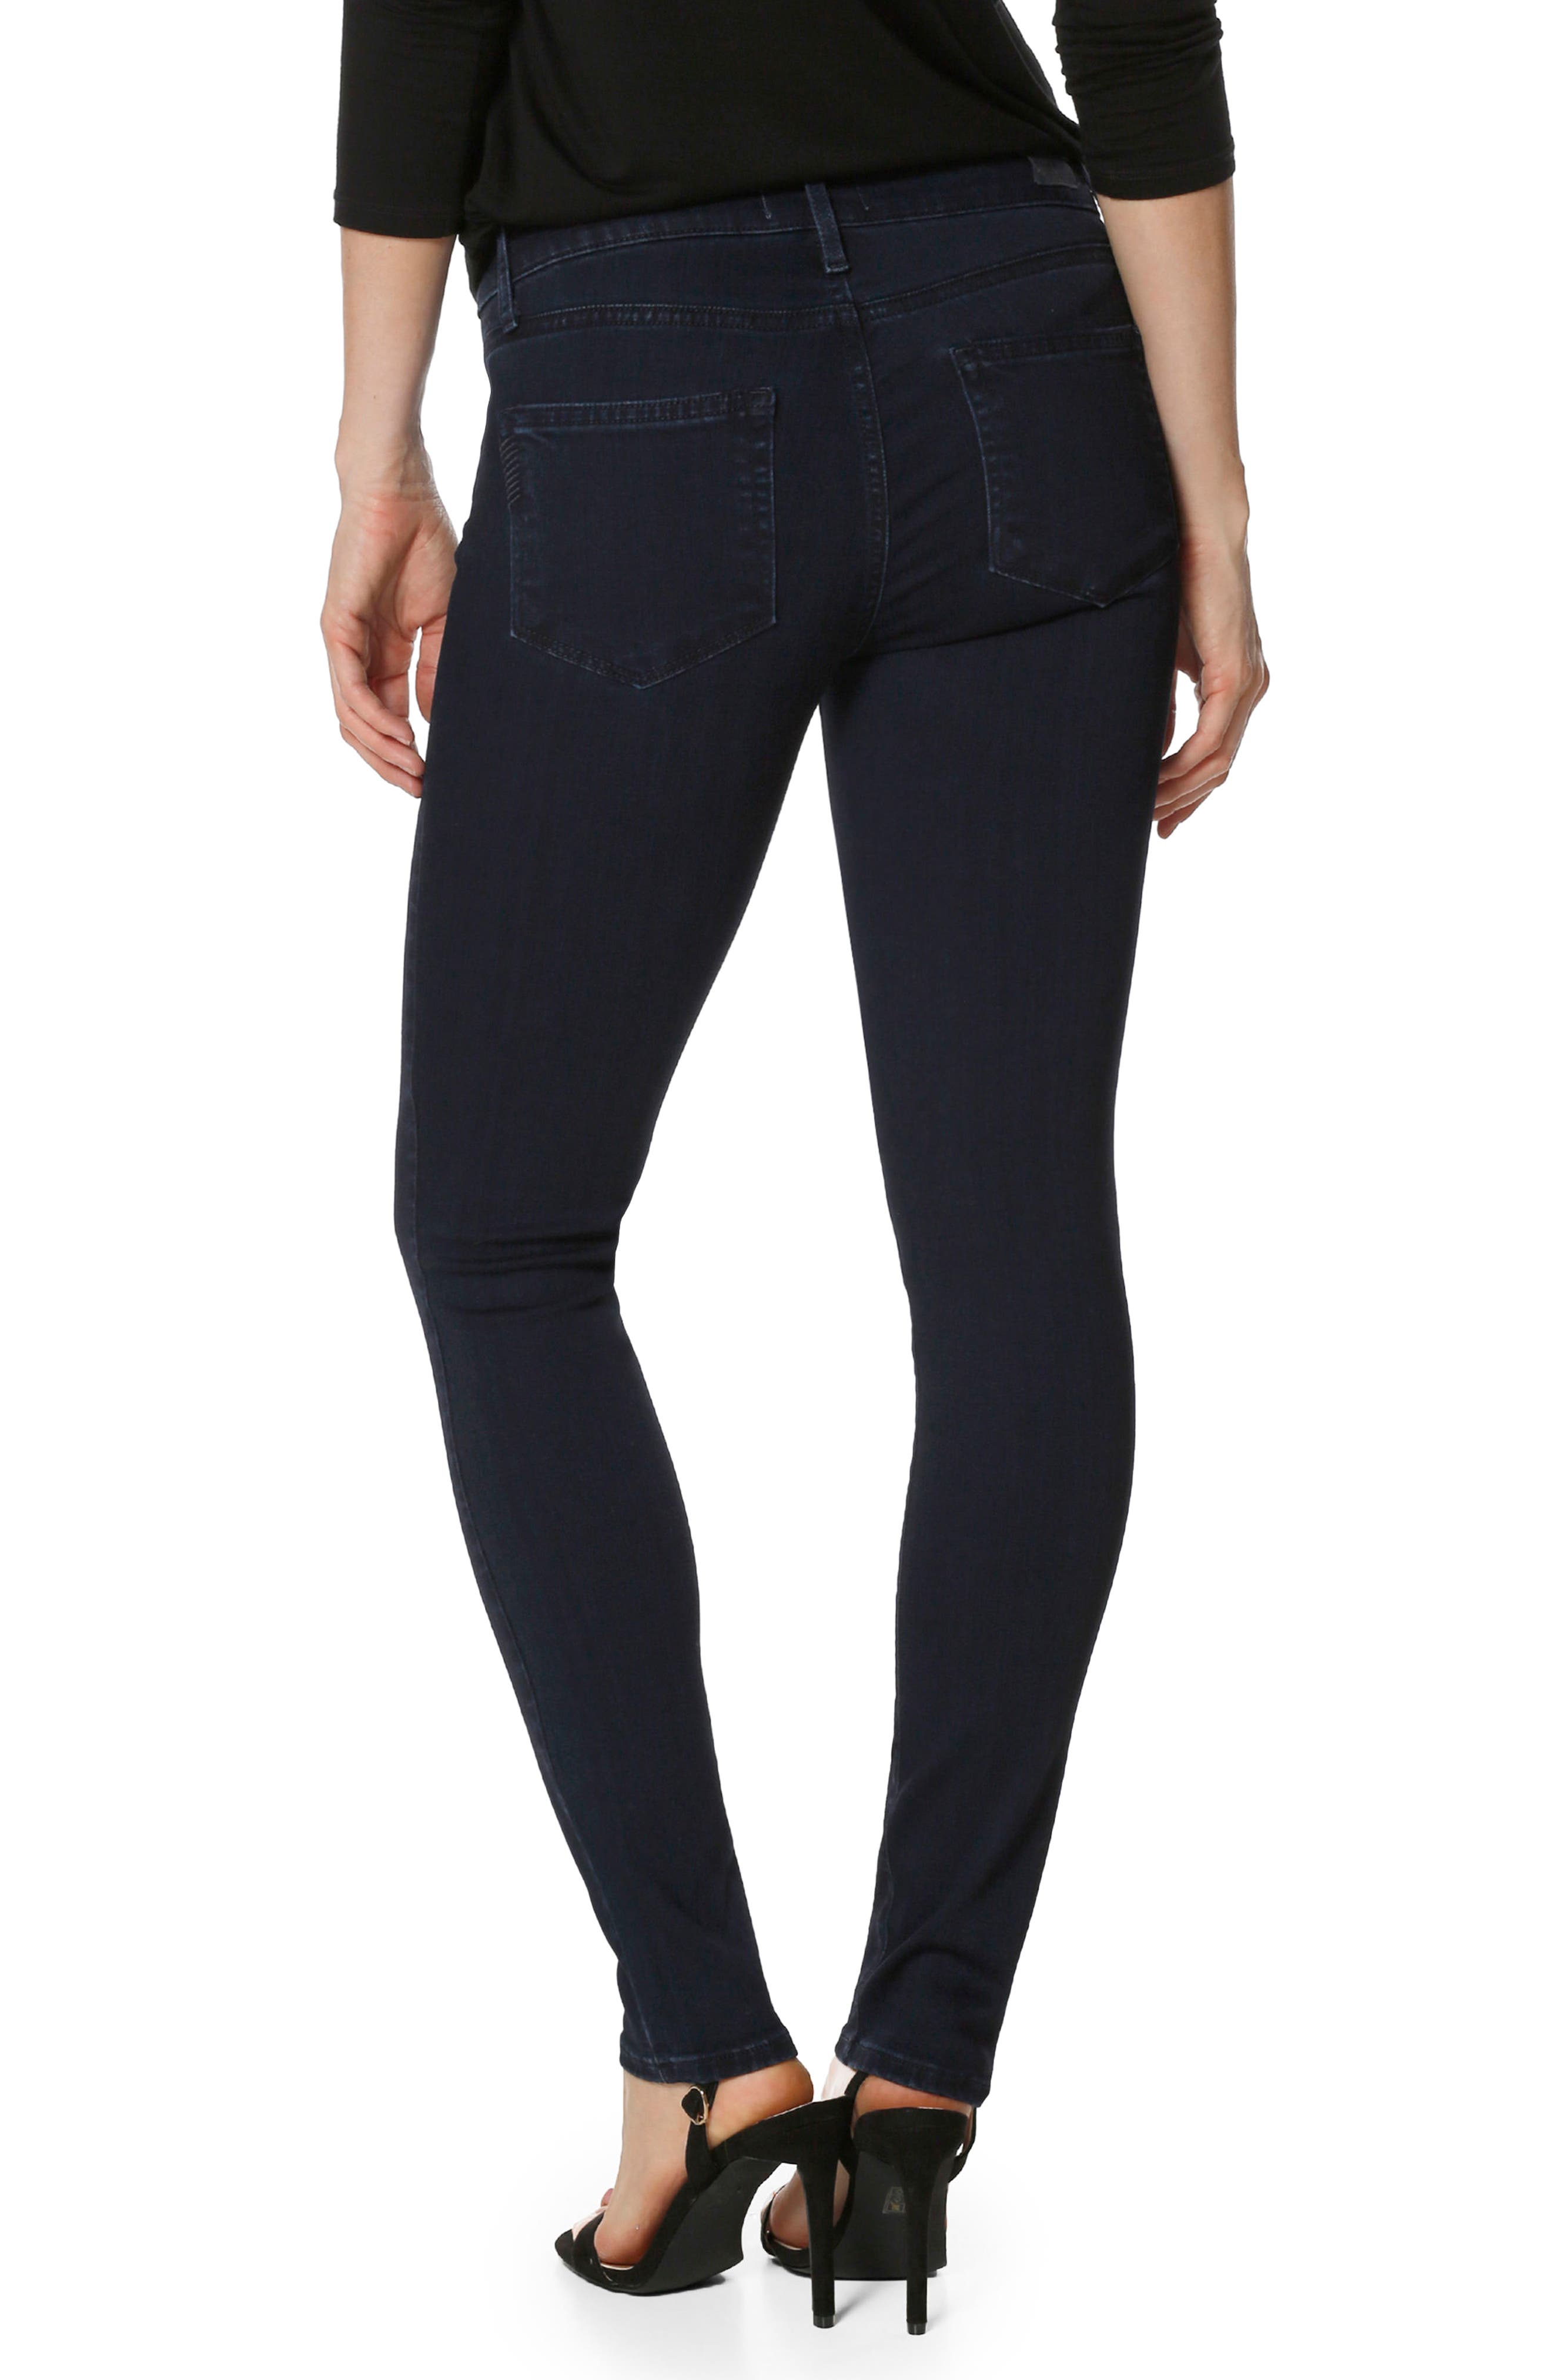 Transcend - Verdugo Ultra Skinny Jeans,                             Alternate thumbnail 3, color,                             Alley